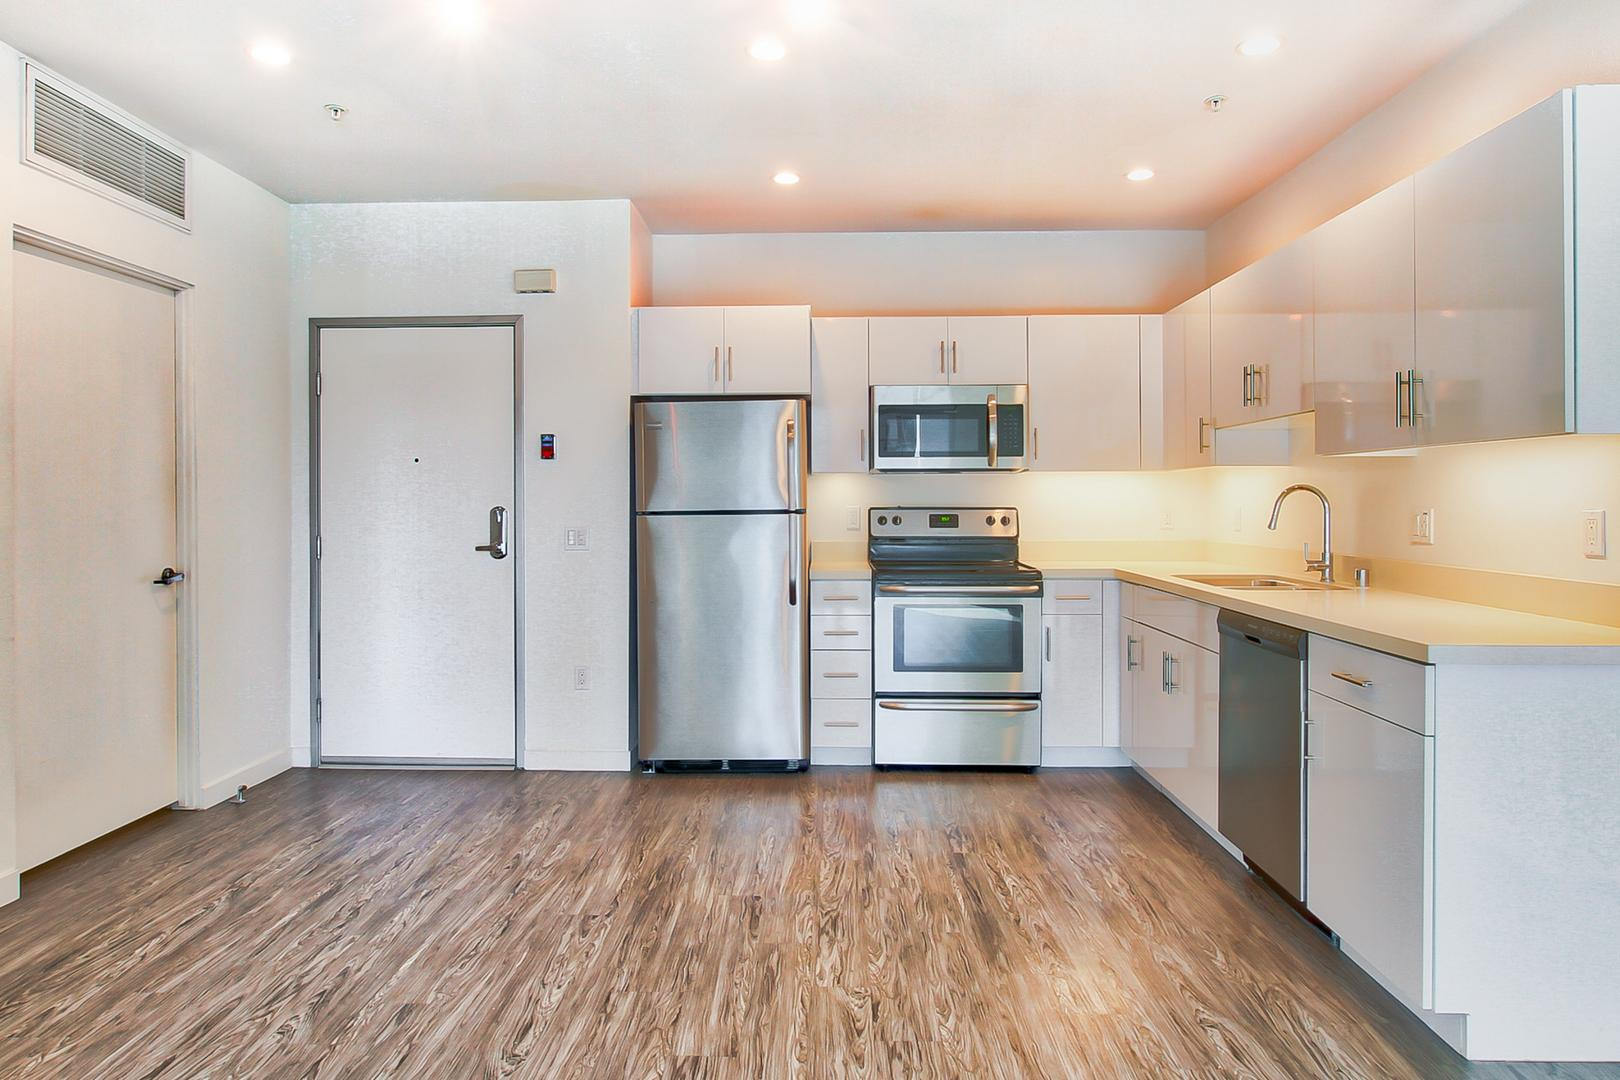 215 N Maryland Ave #311, Glendale, CA - $2,470 USD/ month